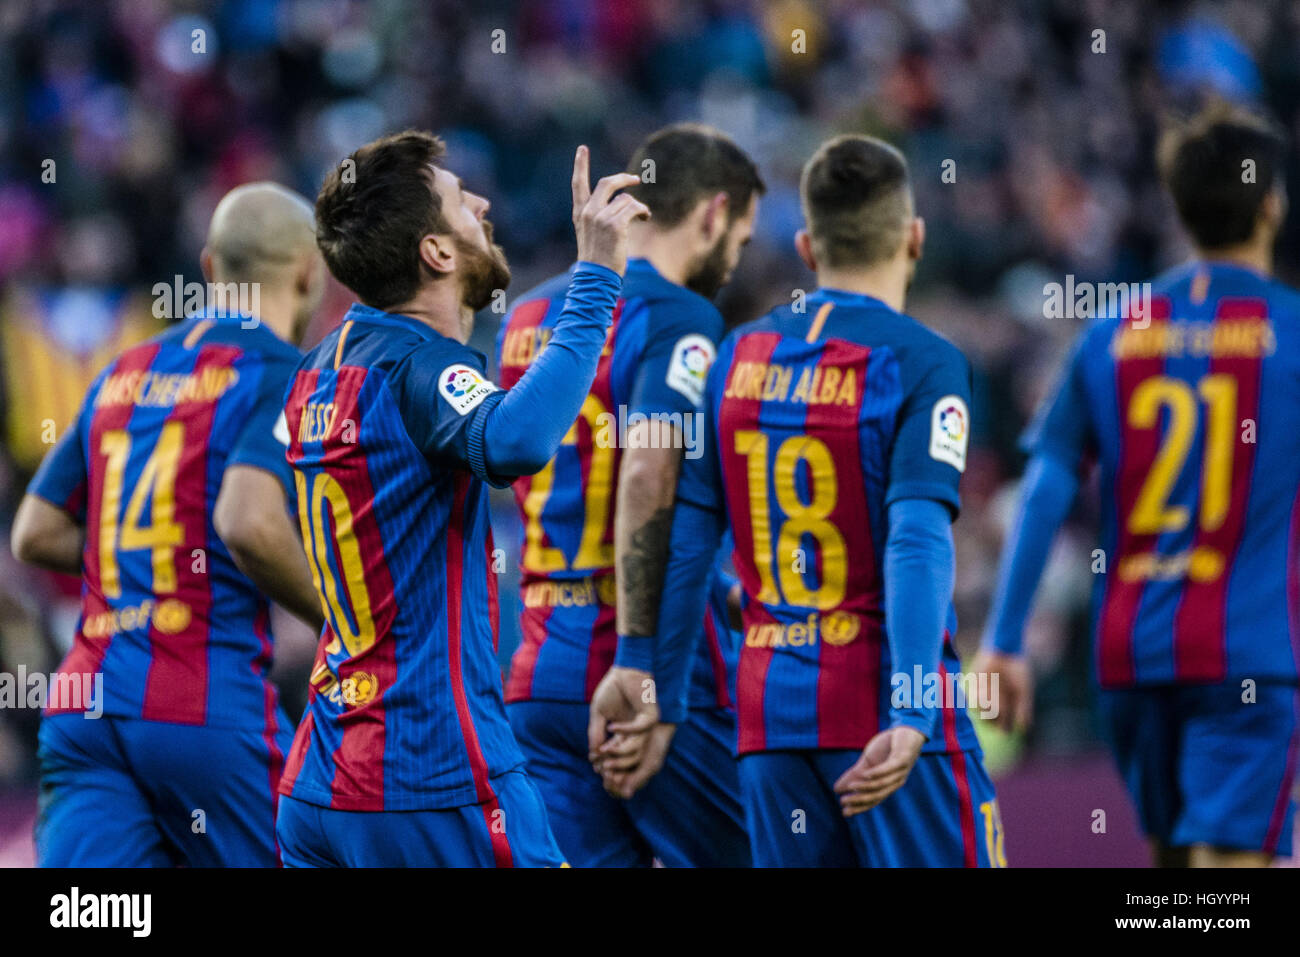 Barcelona, Catalonia, Spain. 14th Jan, 2017. FC Barcelona forward MESSI celebrates his goal with teammates during - Stock Image